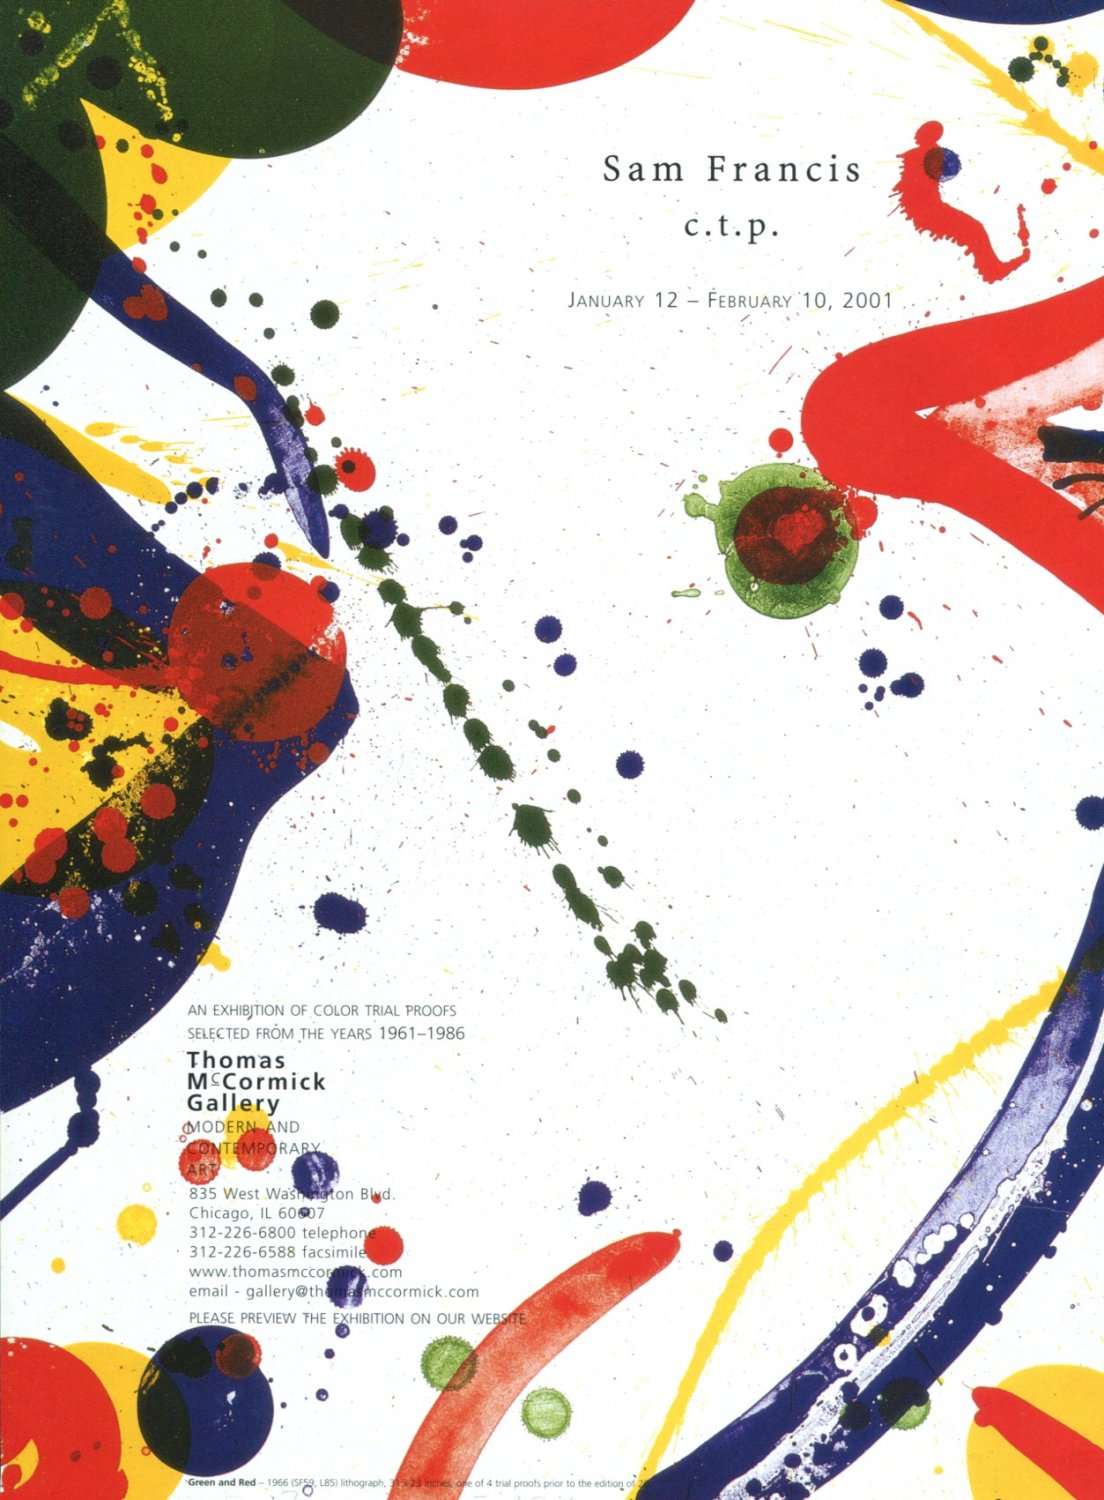 Sam Francis c.t.p. 2001 Art Exhibition Ad Advert